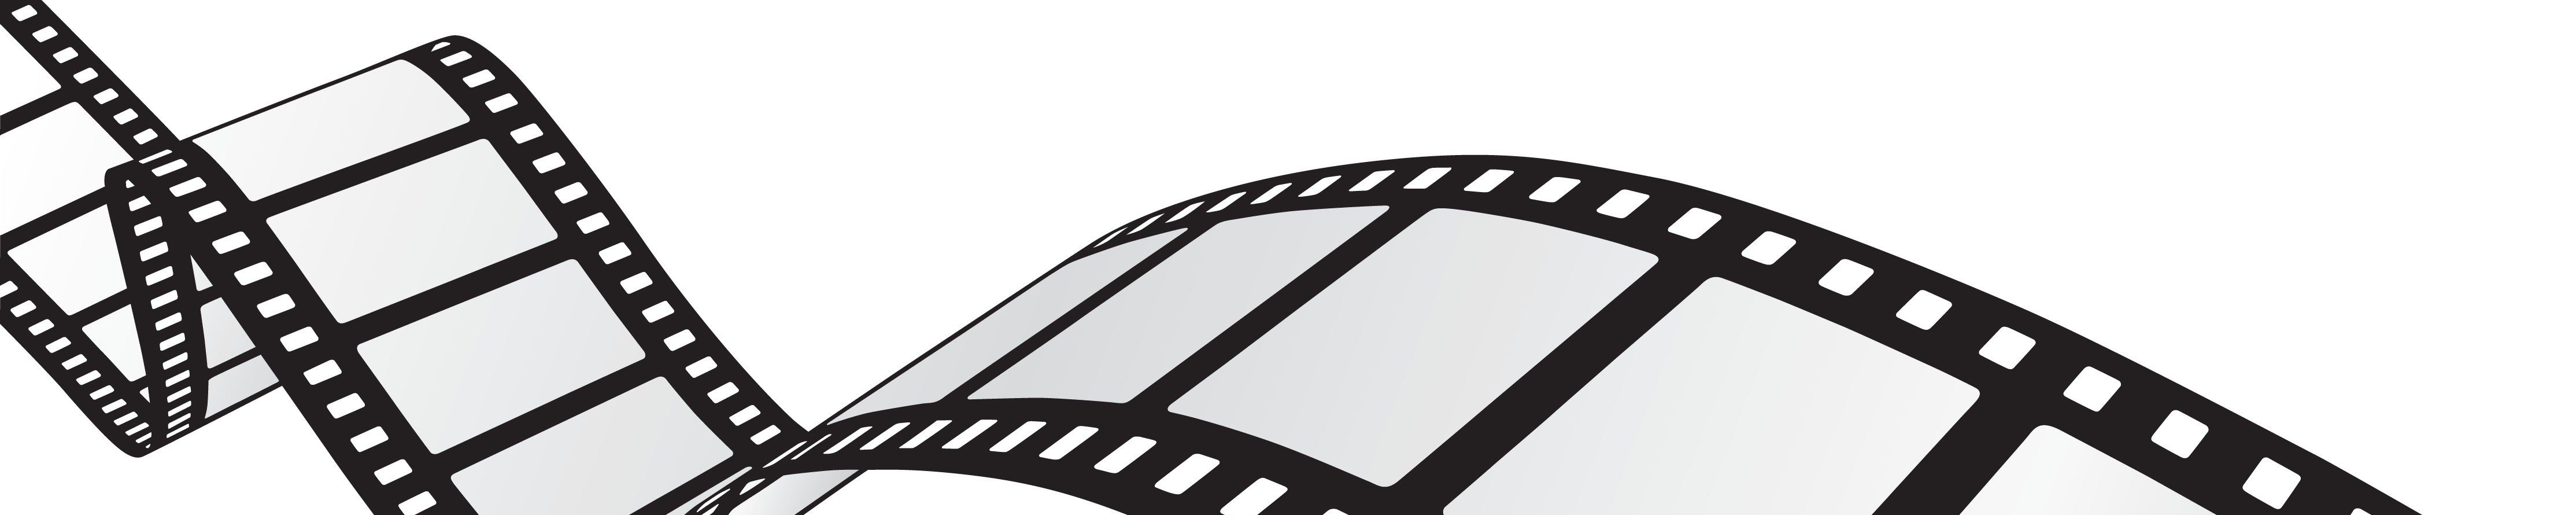 4455x890 Cropped Movie Reel Png Pictures 5 Hd Movie Film Reel Clipart 4455